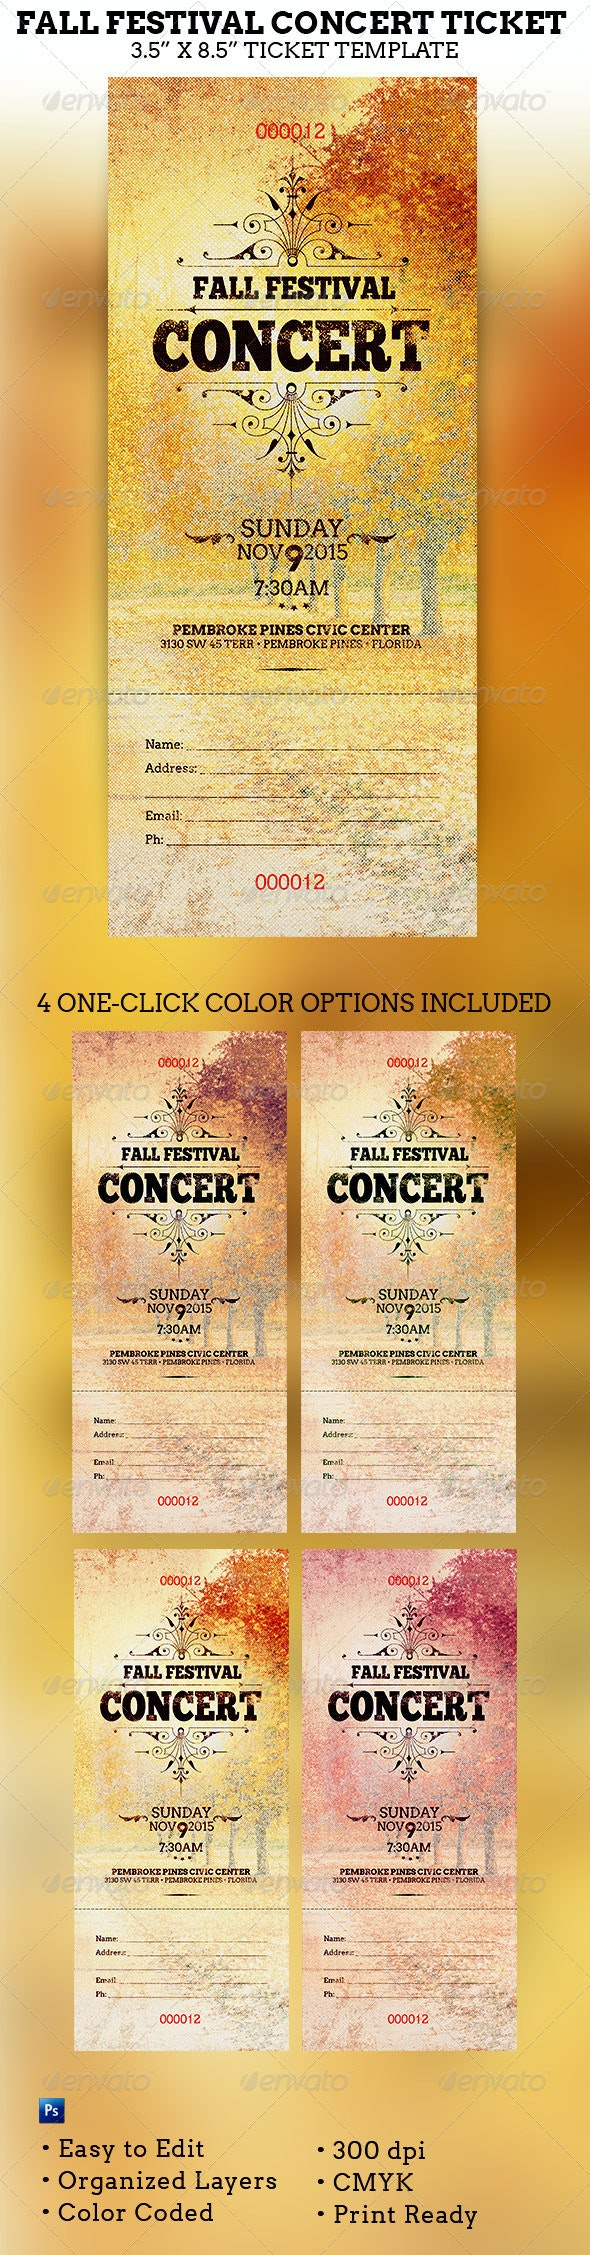 Fall Festival Concert Ticket Template - Miscellaneous Print Templates